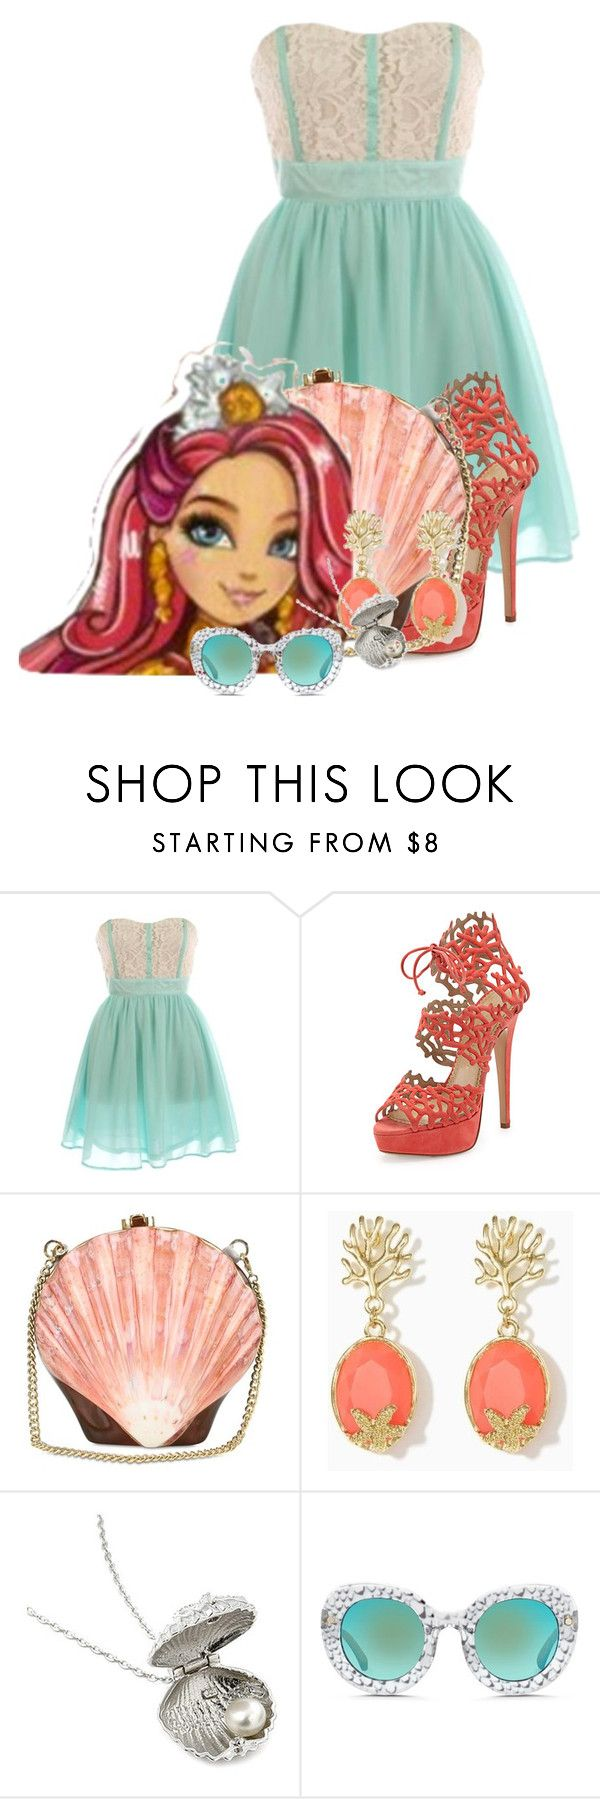 """Meeshell Mermaid outfit-Maddy"" by pinkie8 ❤ liked on Polyvore featuring Charlotte Olympia, Rocio, Fantasy Jewelry Box and Matthew Williamson"